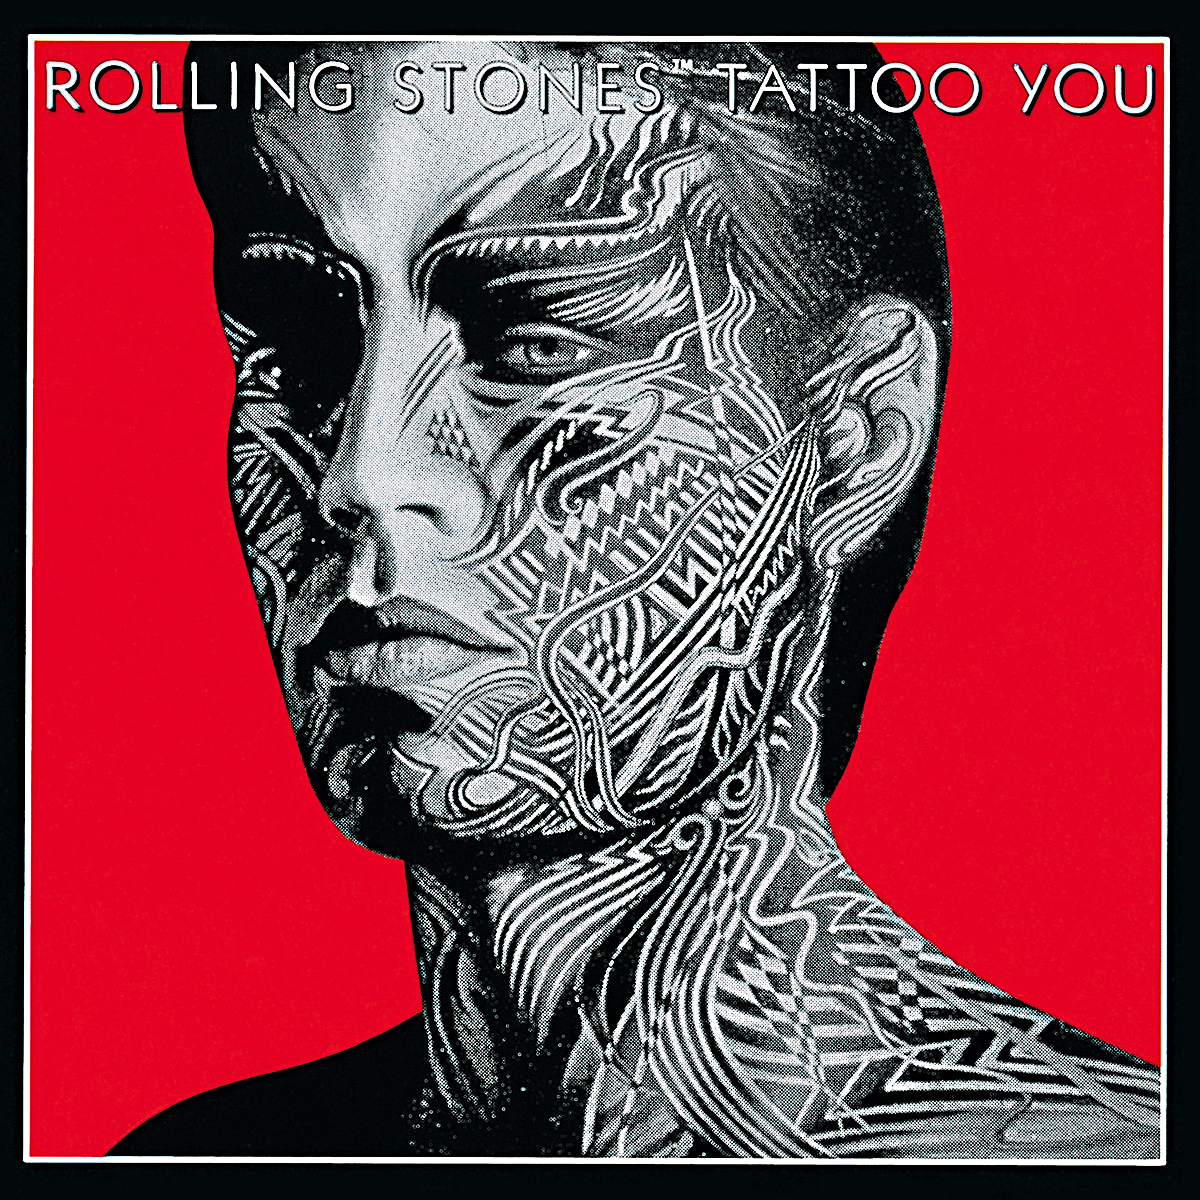 THE ROLLING STONES  Tattoo You, 1981, The Glimmer Twins, 44:23